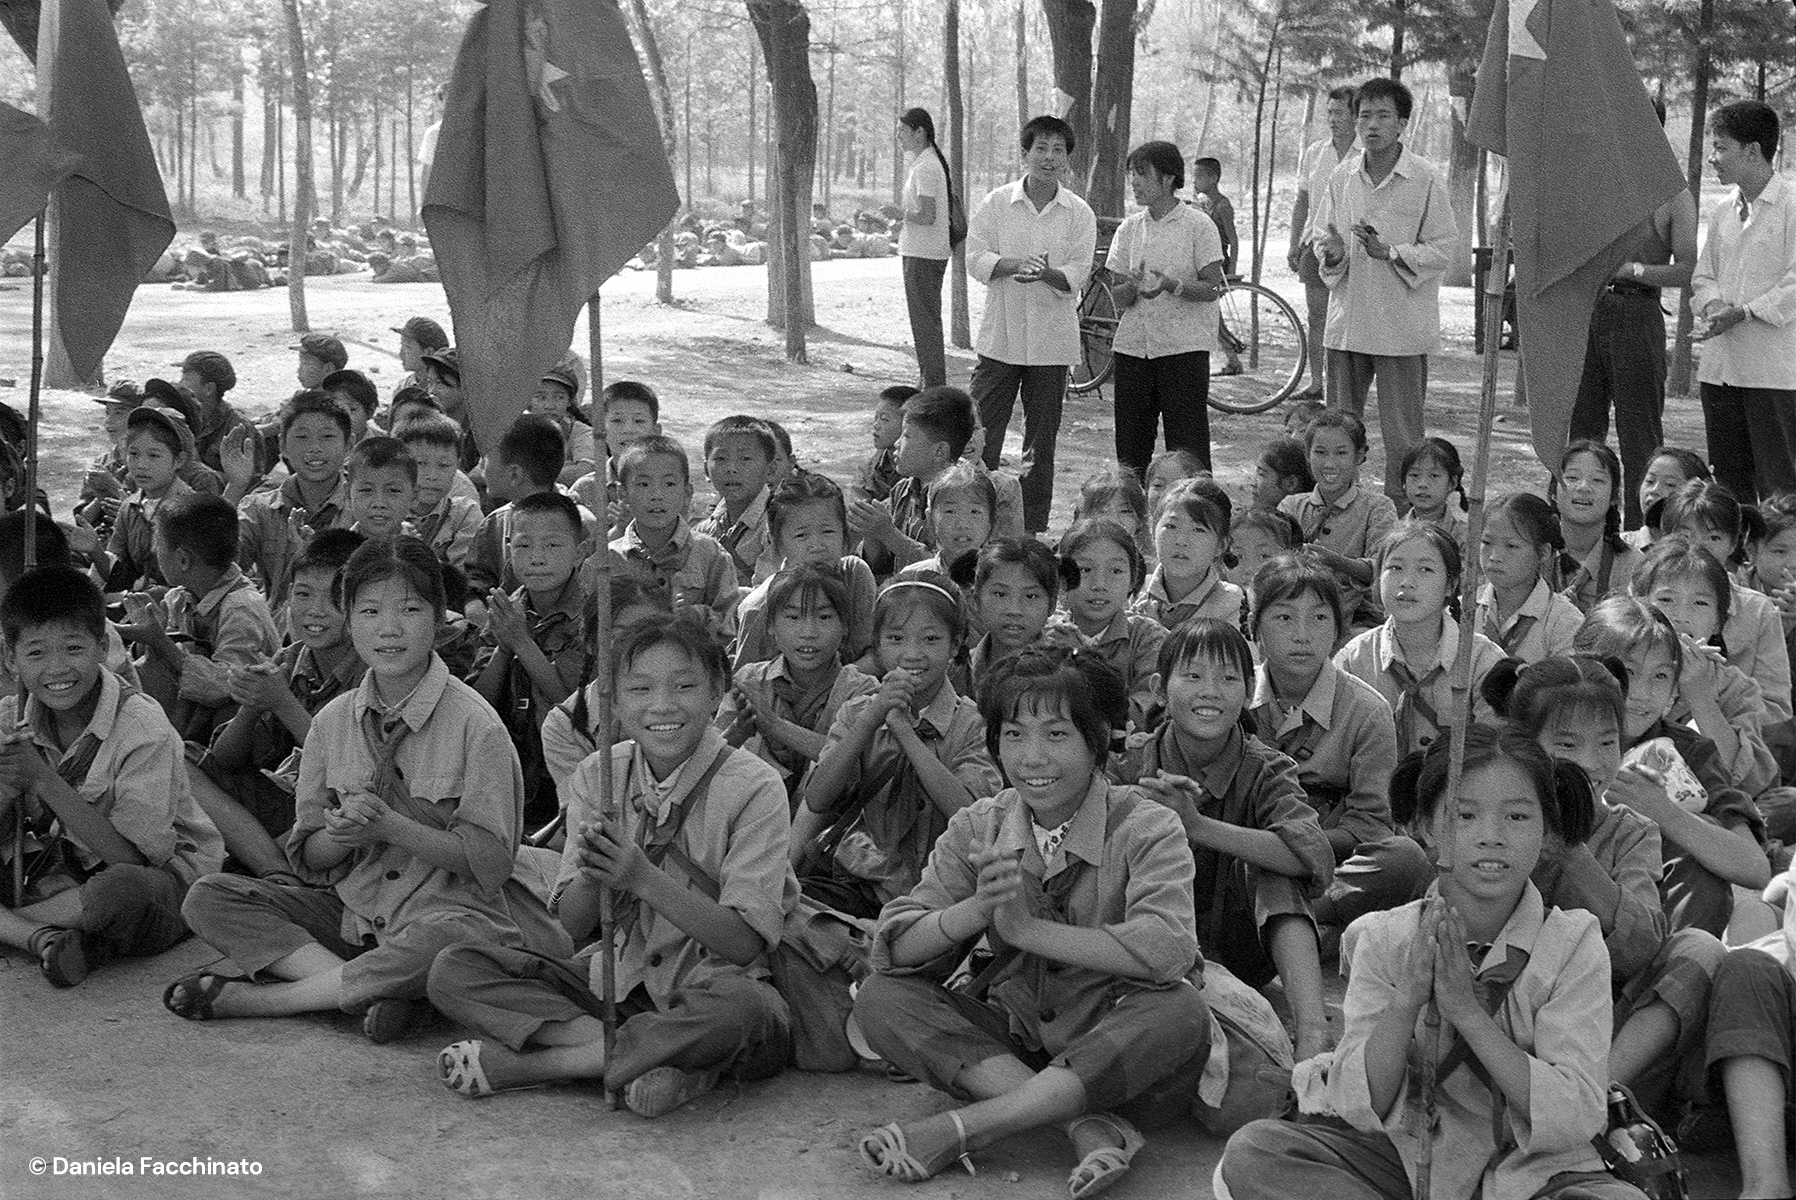 China, 1976. Schoolchildren during a military training exercise